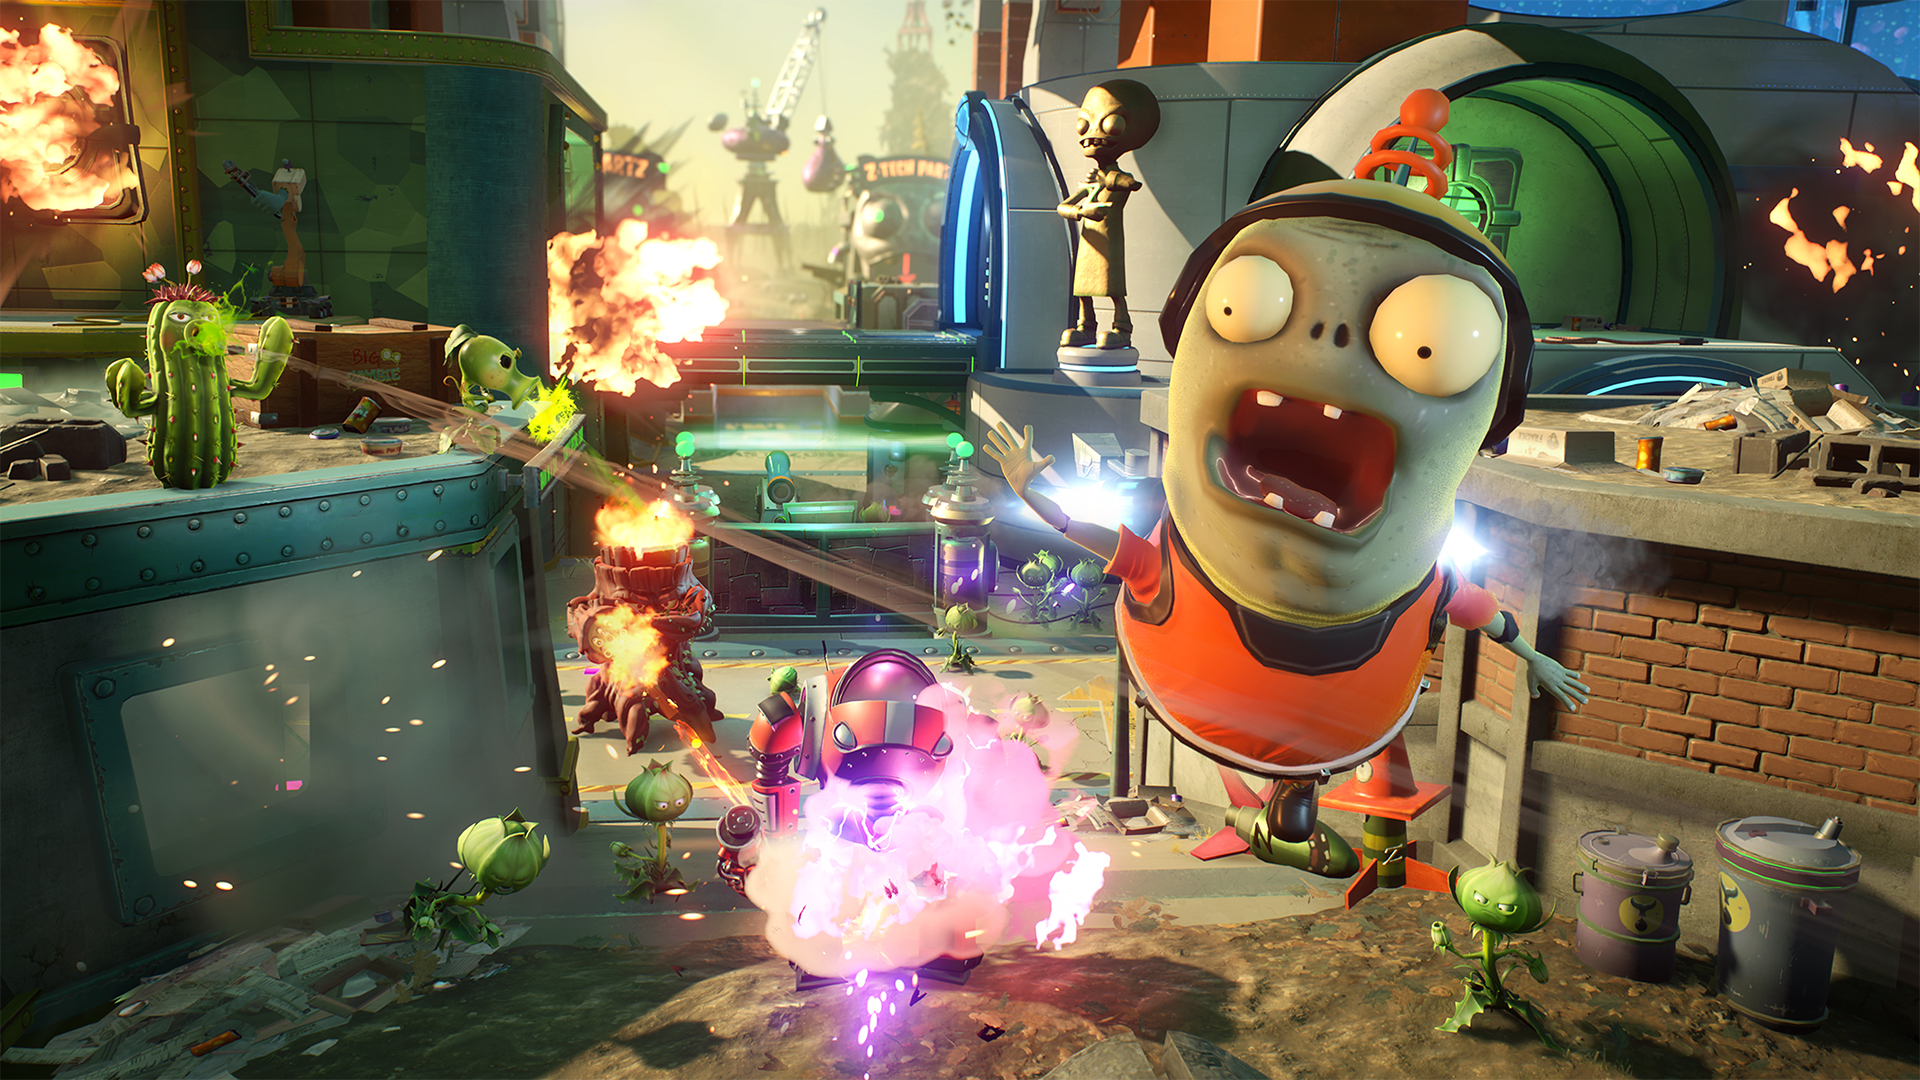 Plants vs zombies garden warfare 2 xbox one review more - Plants vs zombies garden warfare xbox one ...